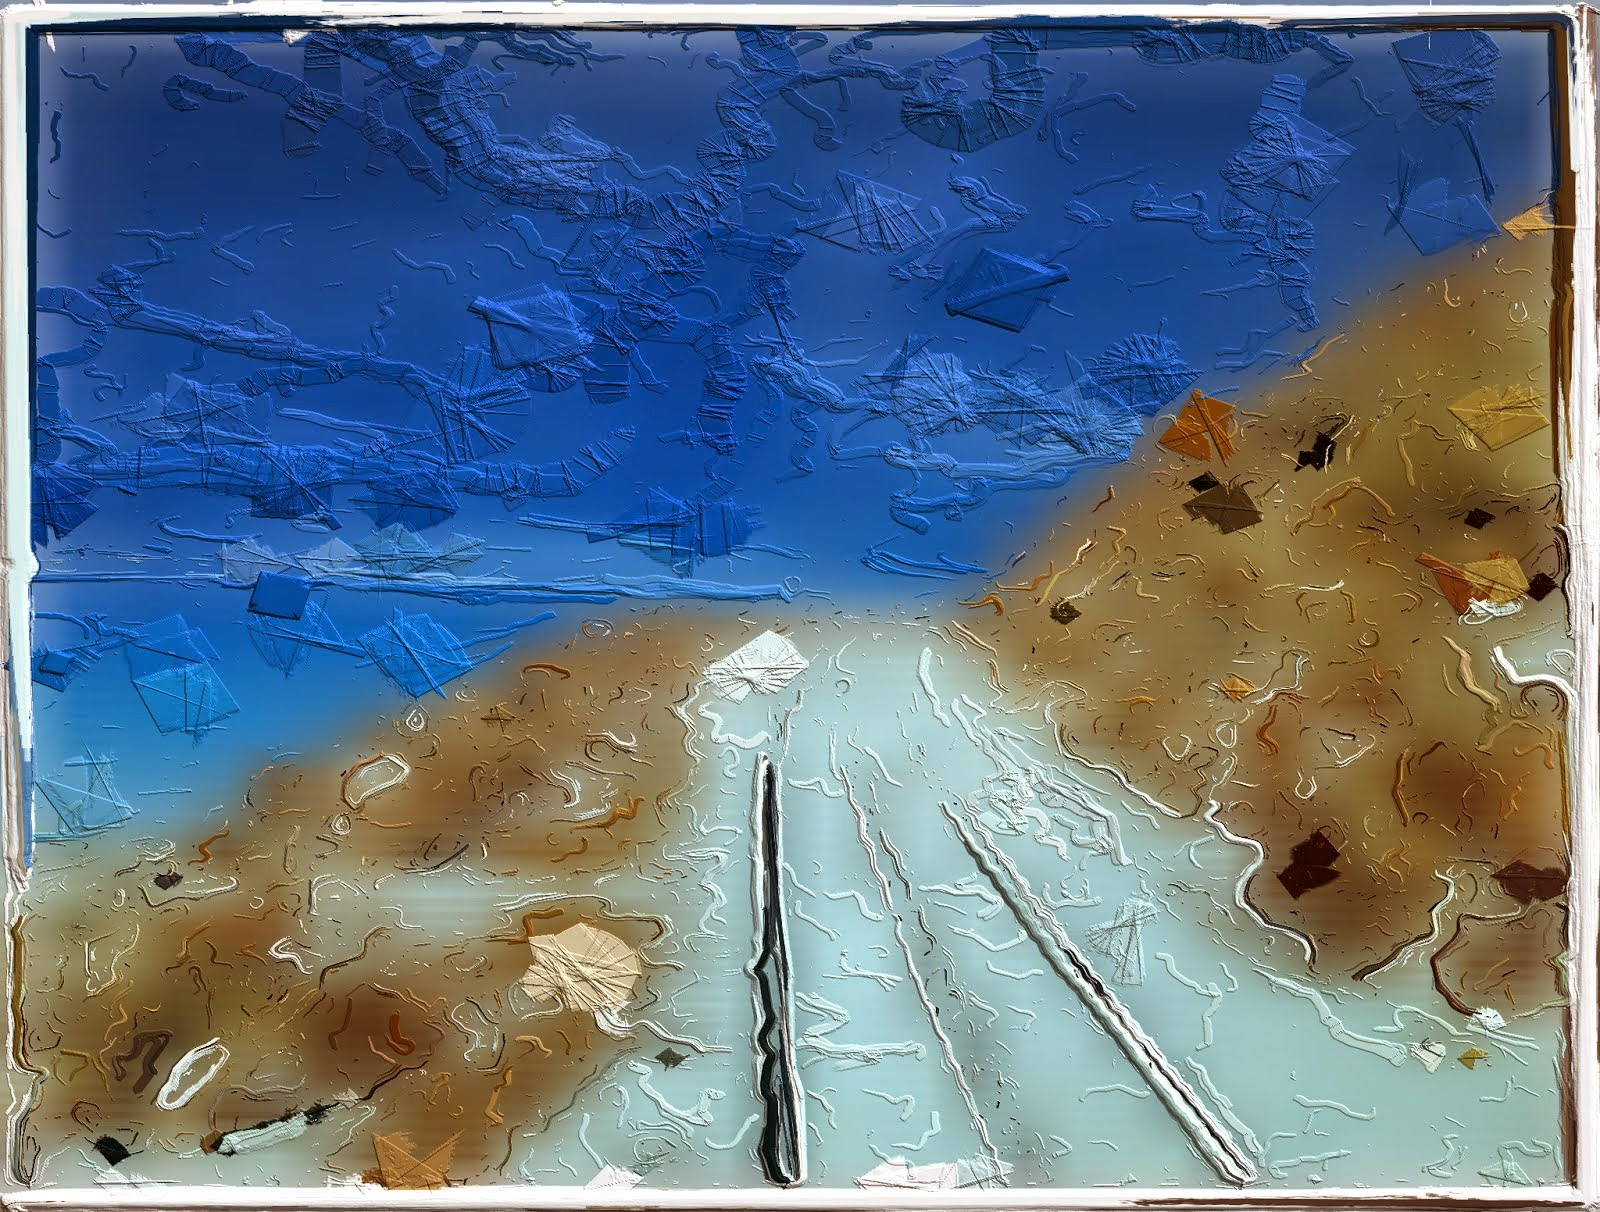 abstract train tracks painting